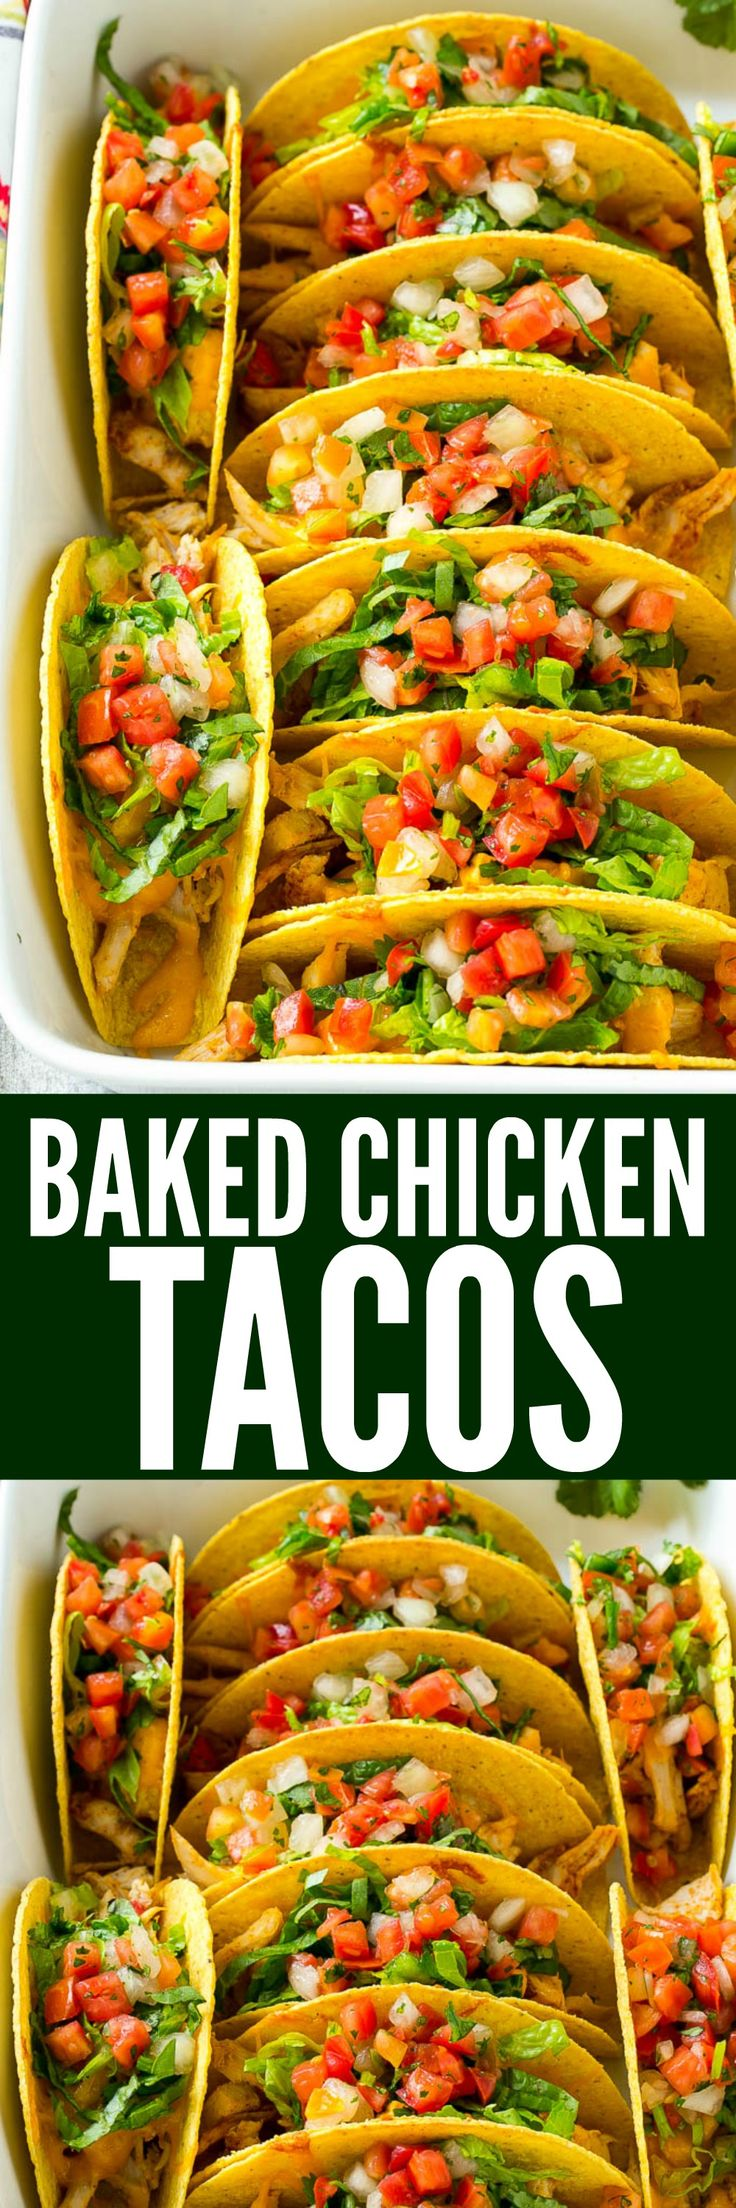 hese baked chicken tacos are loaded with seasoned chicken, cheese and salsa. The perfect easy dinner for a busy day!